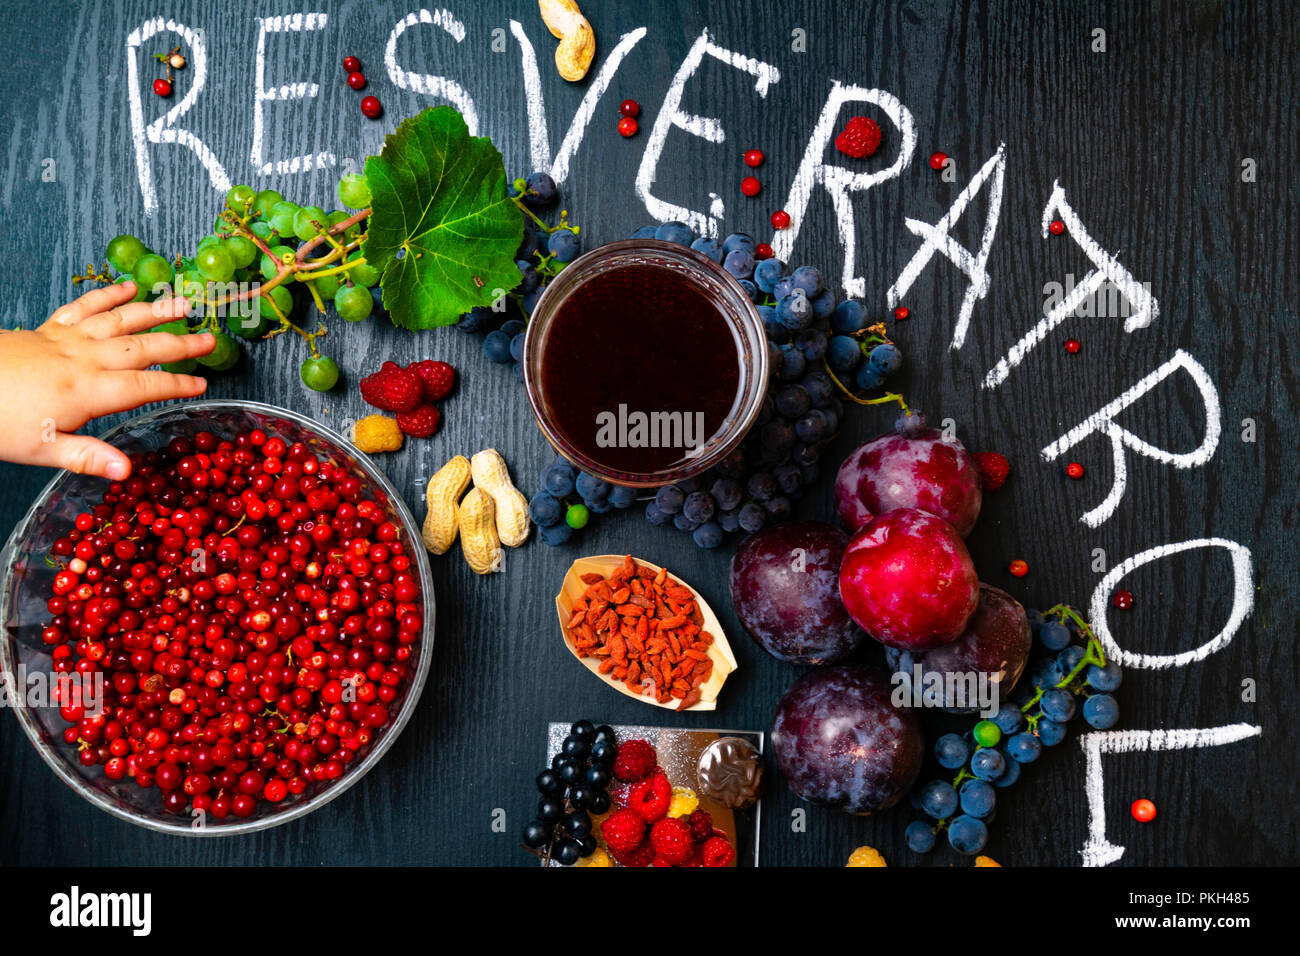 Food Rich With Resveratrol Grapes Plums Goji Peanuts Cranberry Raspberrys Dark Chocolate Red Wine On Black Wooden Background Stock Photo Alamy